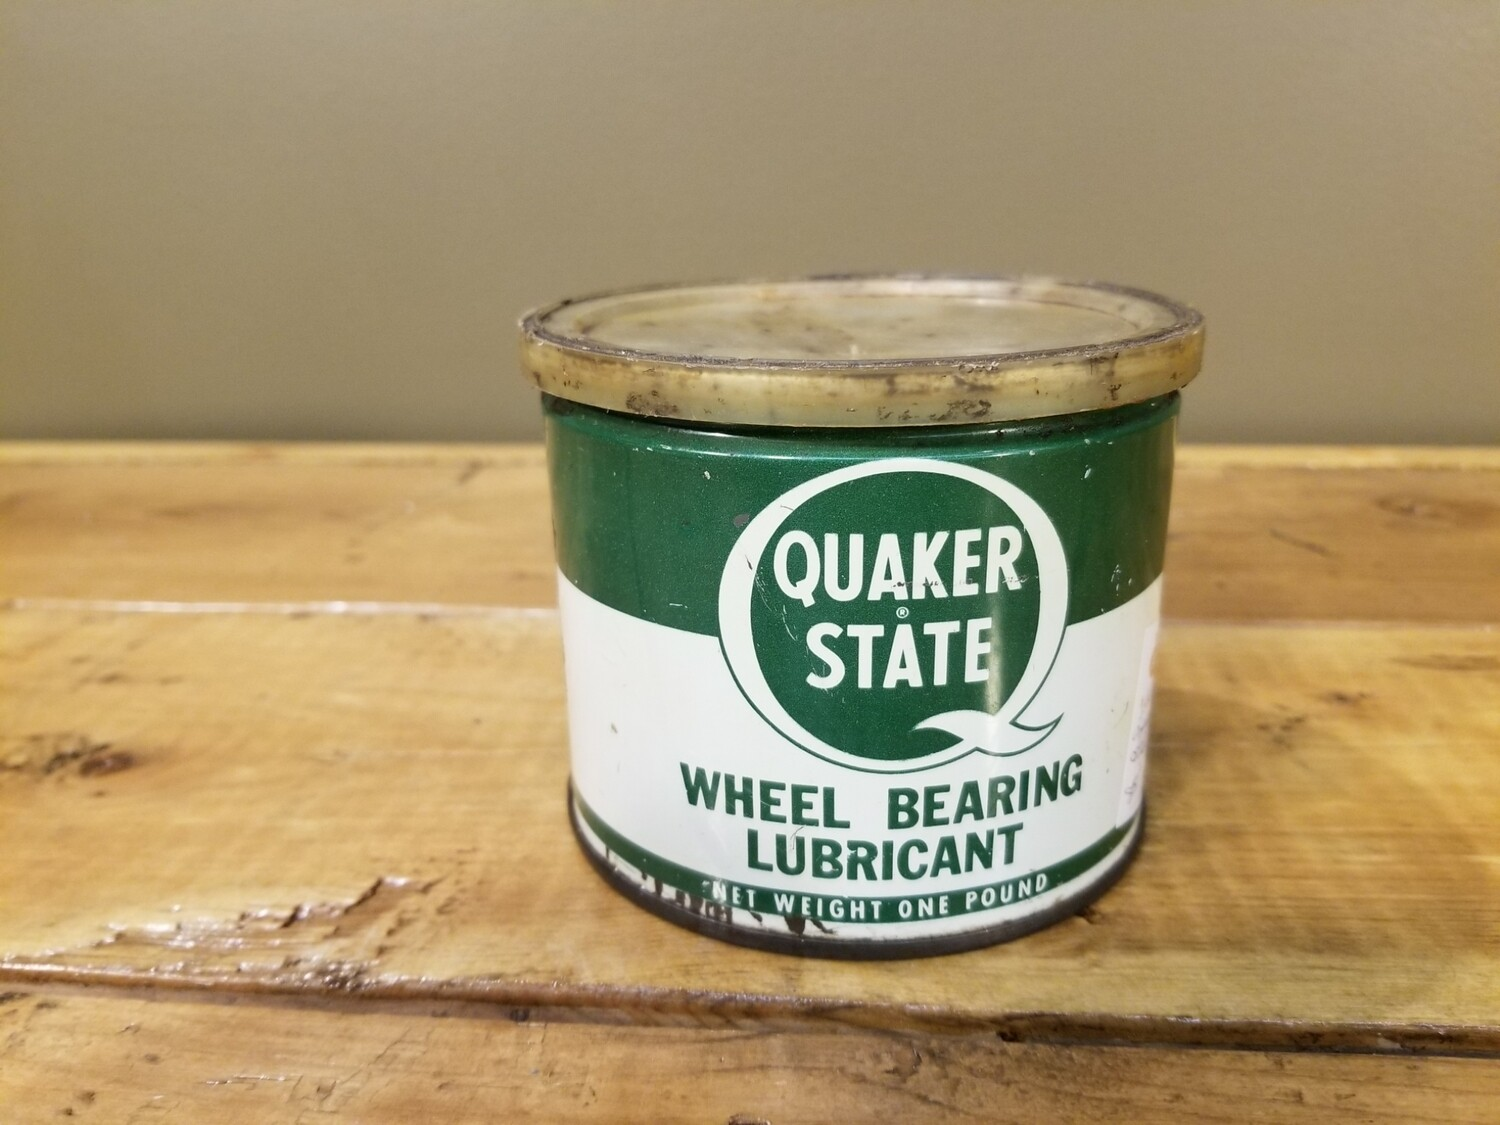 Quaker State- Wheel Bearing Lubricant- Opened